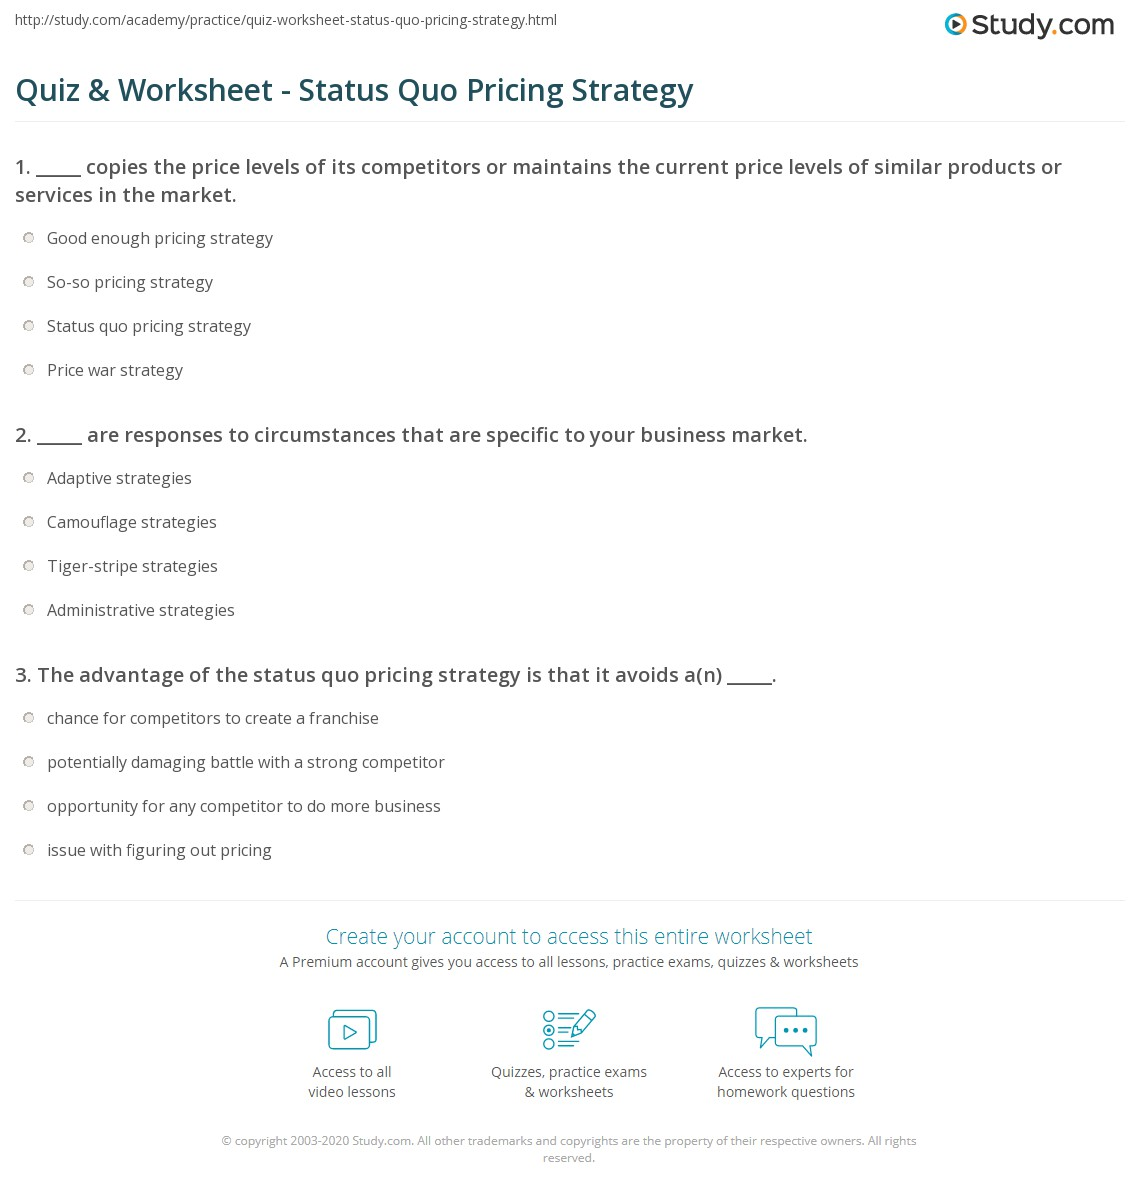 Pricing Strategy: Quiz & Worksheet - Status Quo Pricing Strategy